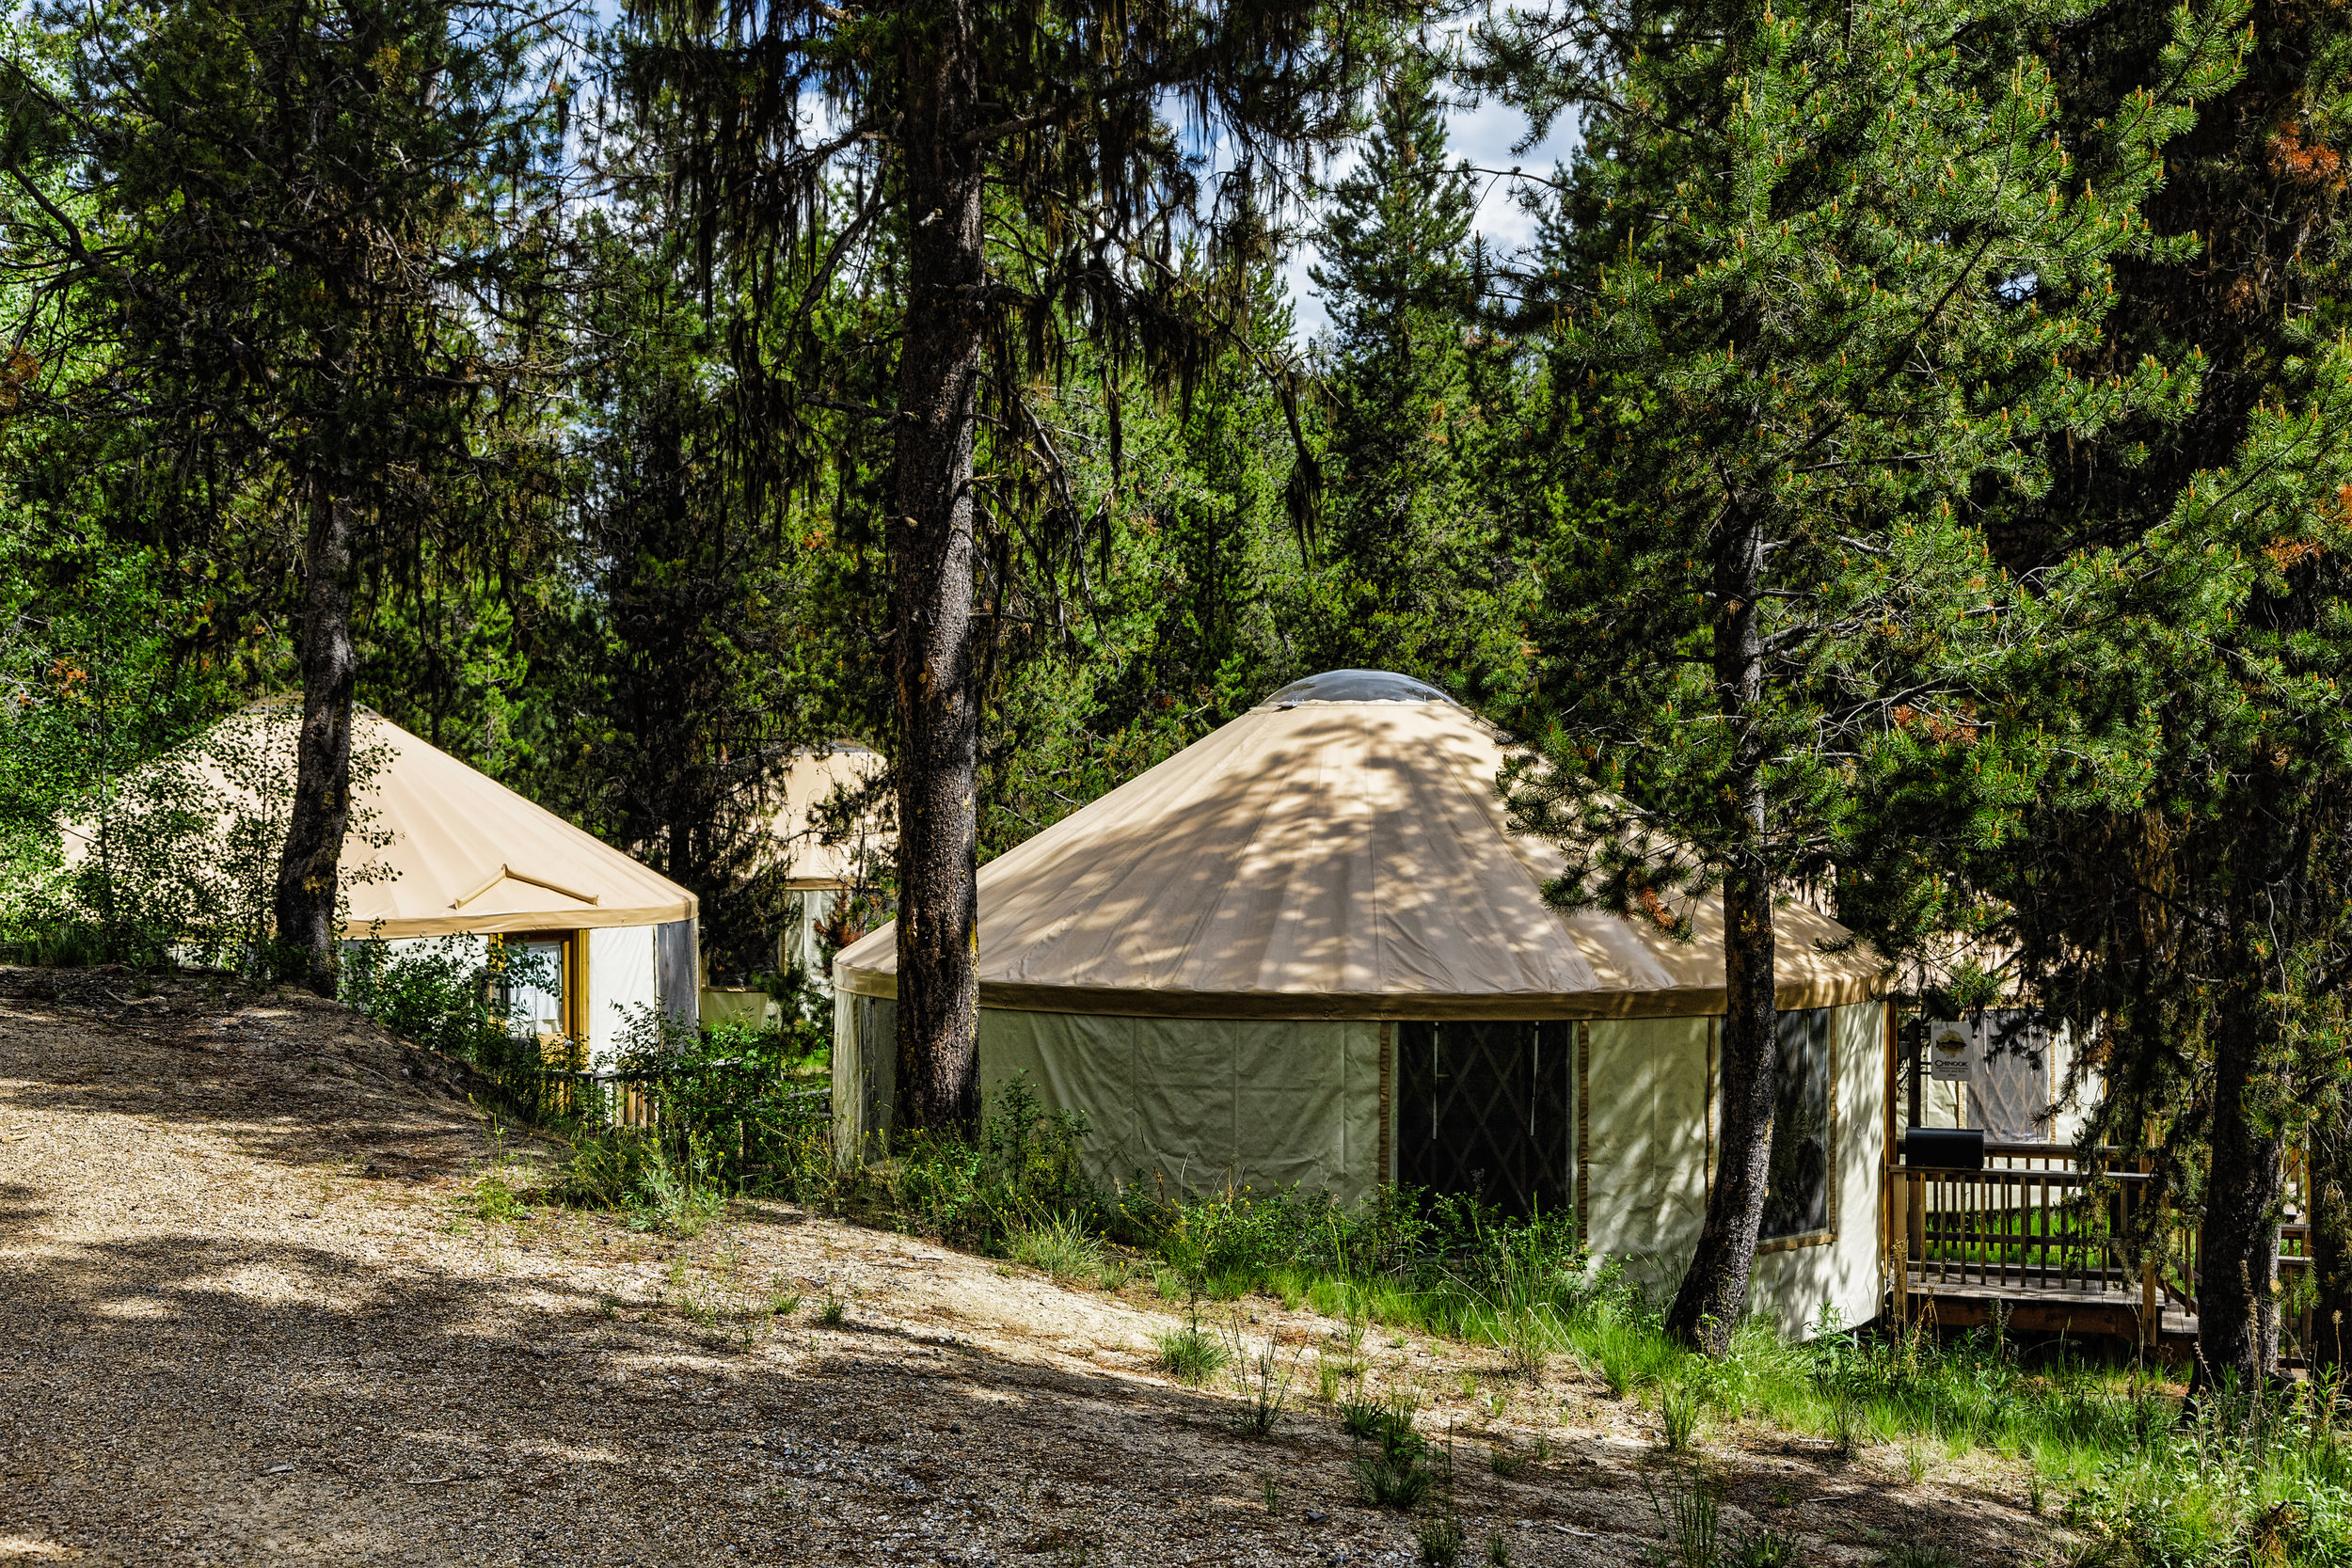 YURTS - A total of seven yurts, each 27' in diameter and approximately 575 square feet in size have been built at the Y Camp. Each yurt has electrical lighting and heat and 6 bunk beds. Pads for additional yurts have been prepared for future installation.